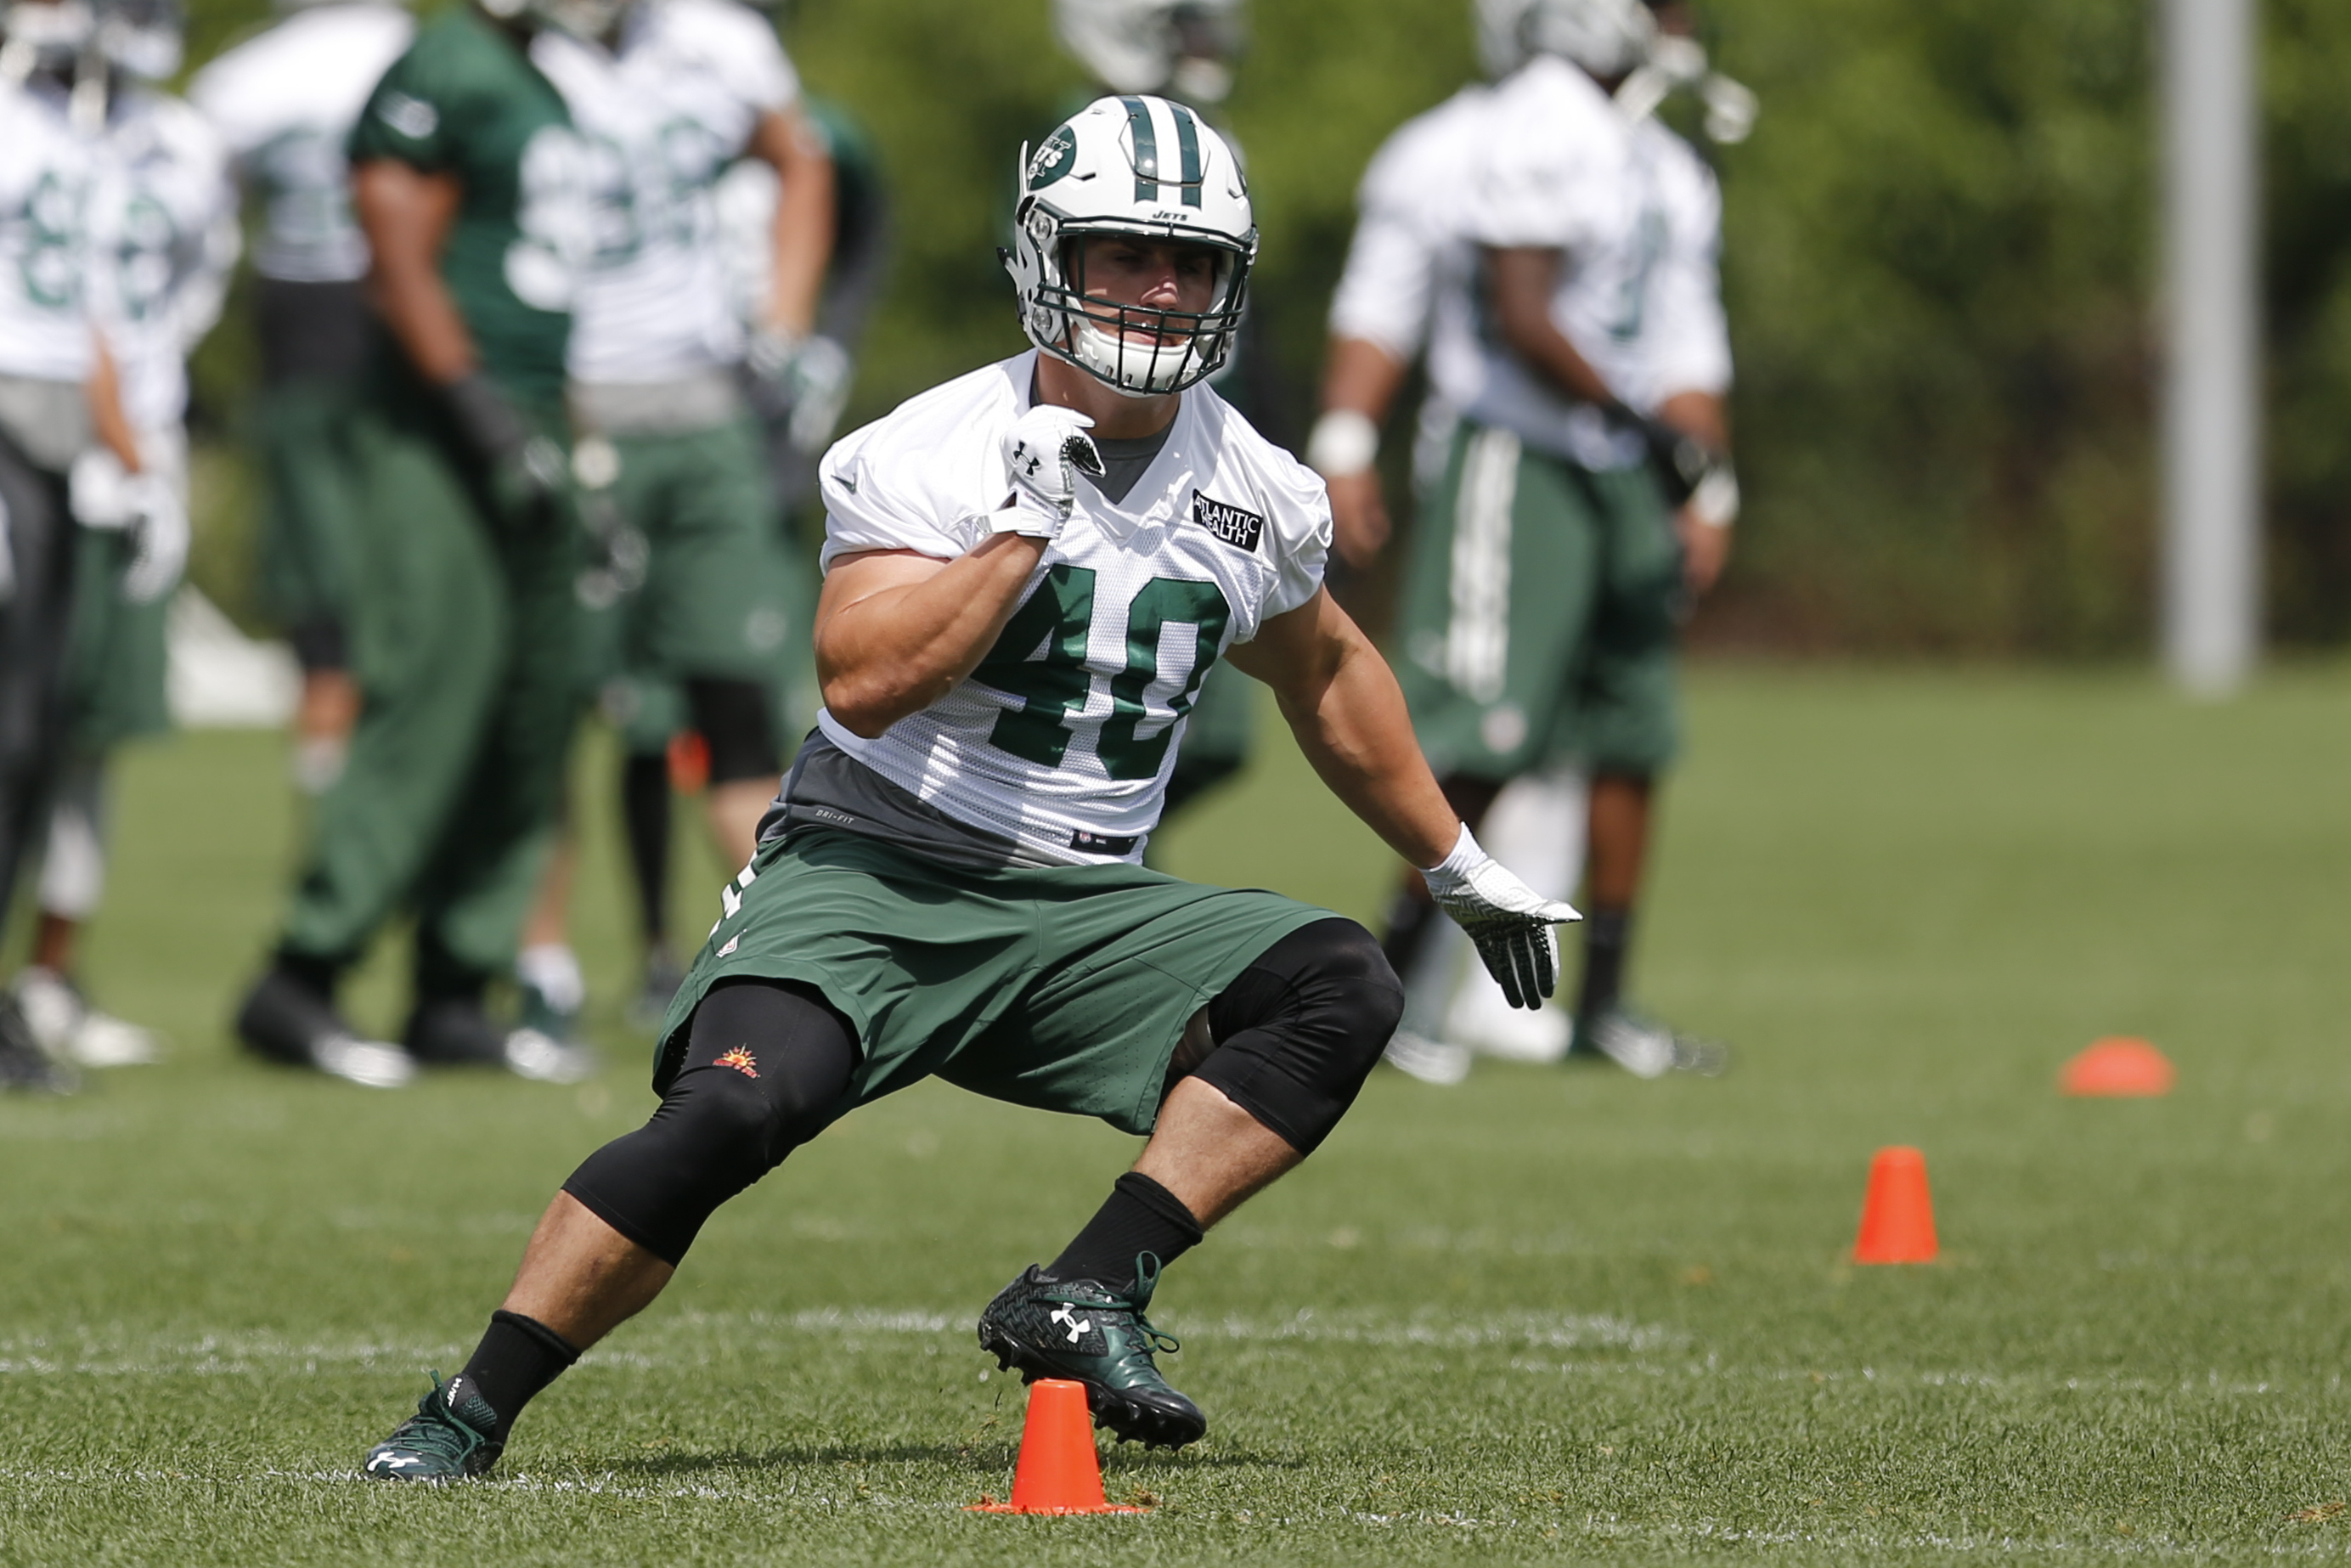 FILE - In this June 3, 2015, file photo, New York Jets fullback Tommy Bohanon runs a route during organized team activities at the team's NFL football training center in Florham Park, N.J. Bohanan was a seventh-round pick out of Wake Forest in 2013 and ha